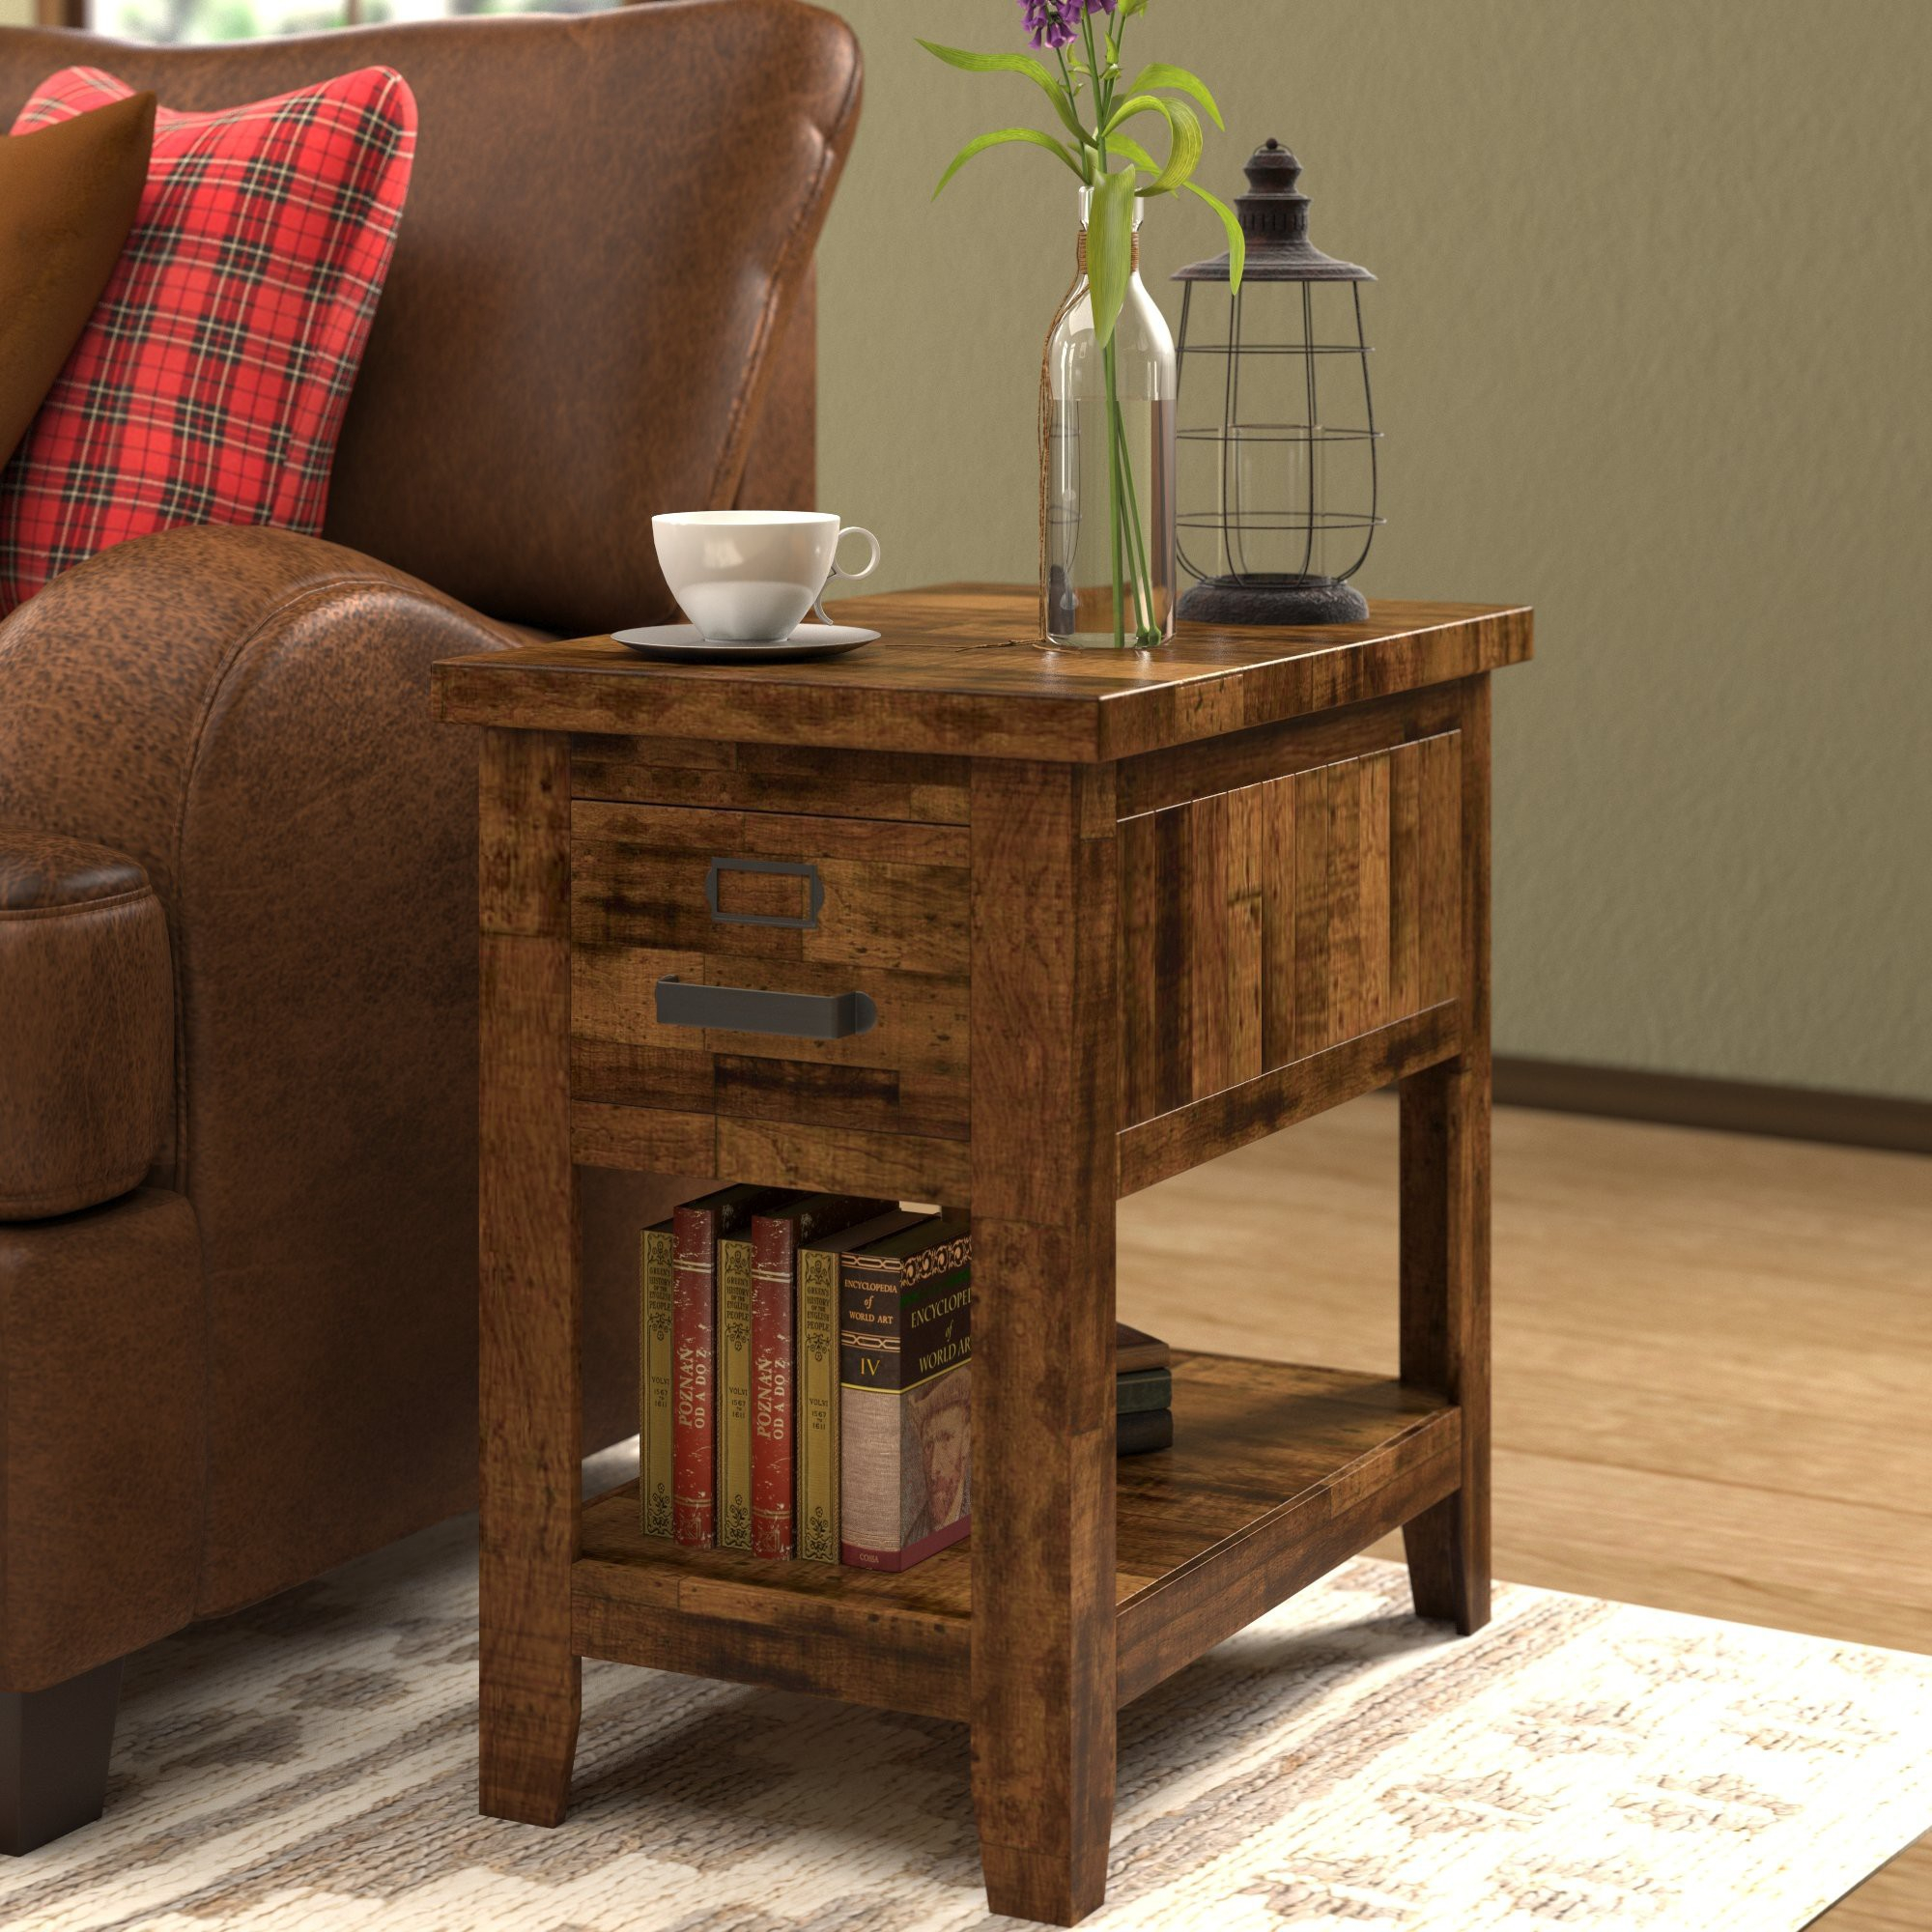 corner coffee table with storage tures tables ideas accent square beautiful rustic sofa large sun umbrellas barn door console decorative chairs for living room very small lamps